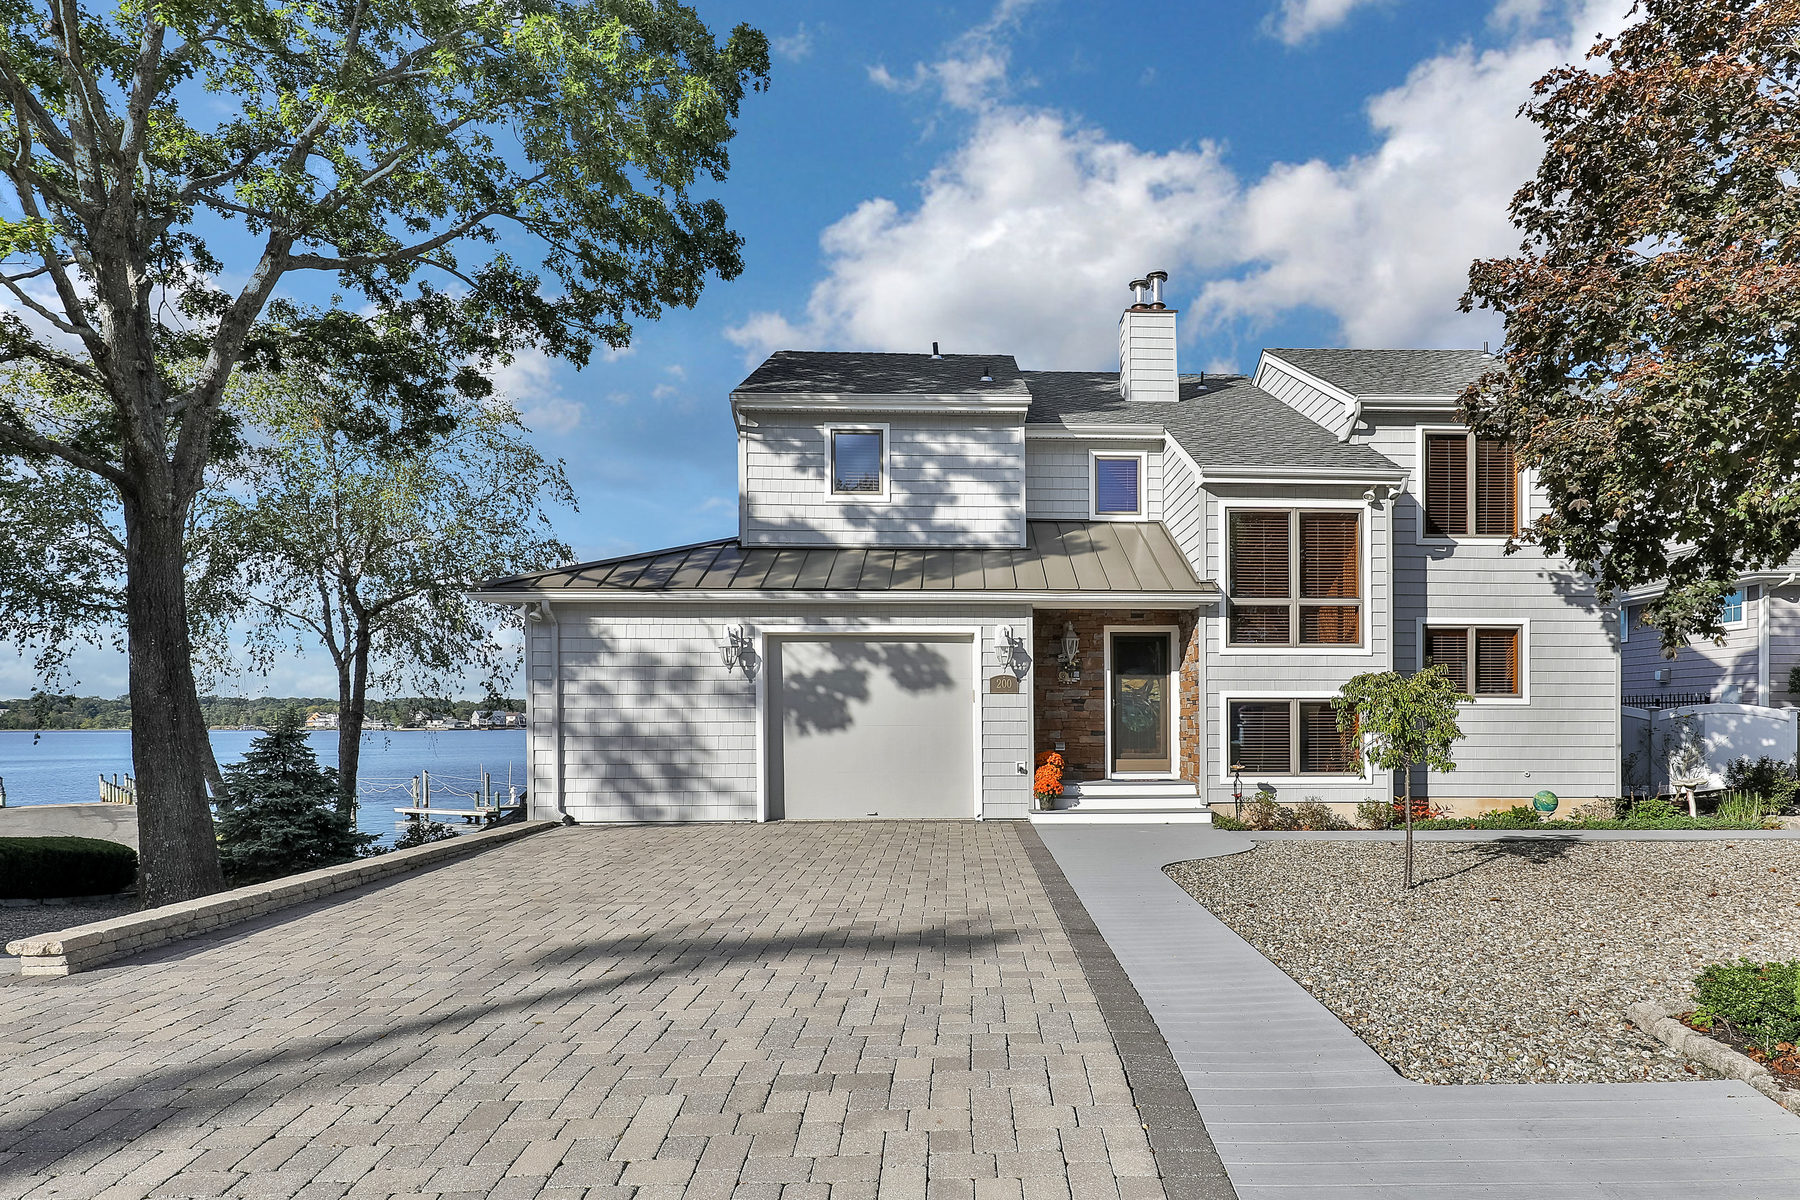 Maison unifamiliale pour l Vente à One Of A Kind Riverfront Home 200 Prospect Avenue Pine Beach, New Jersey 08741 États-Unis